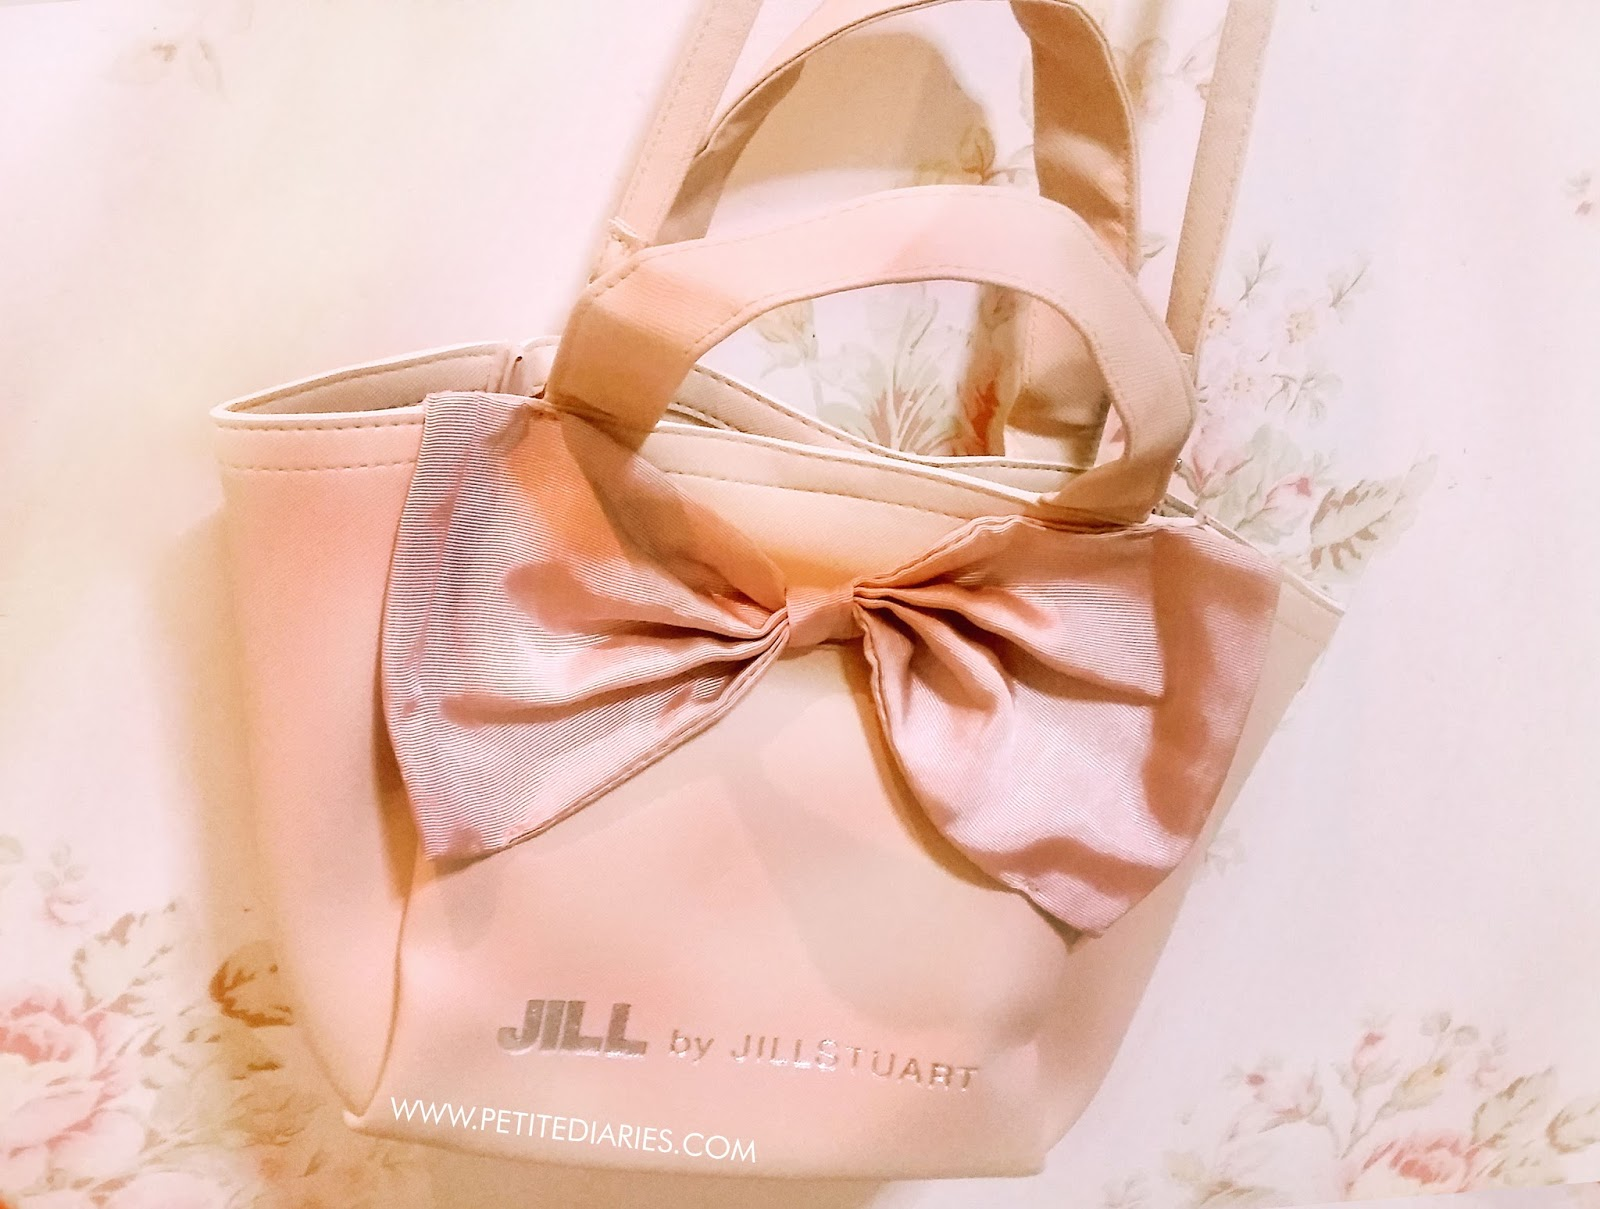 jill by jill stuart handbag kawaii japan